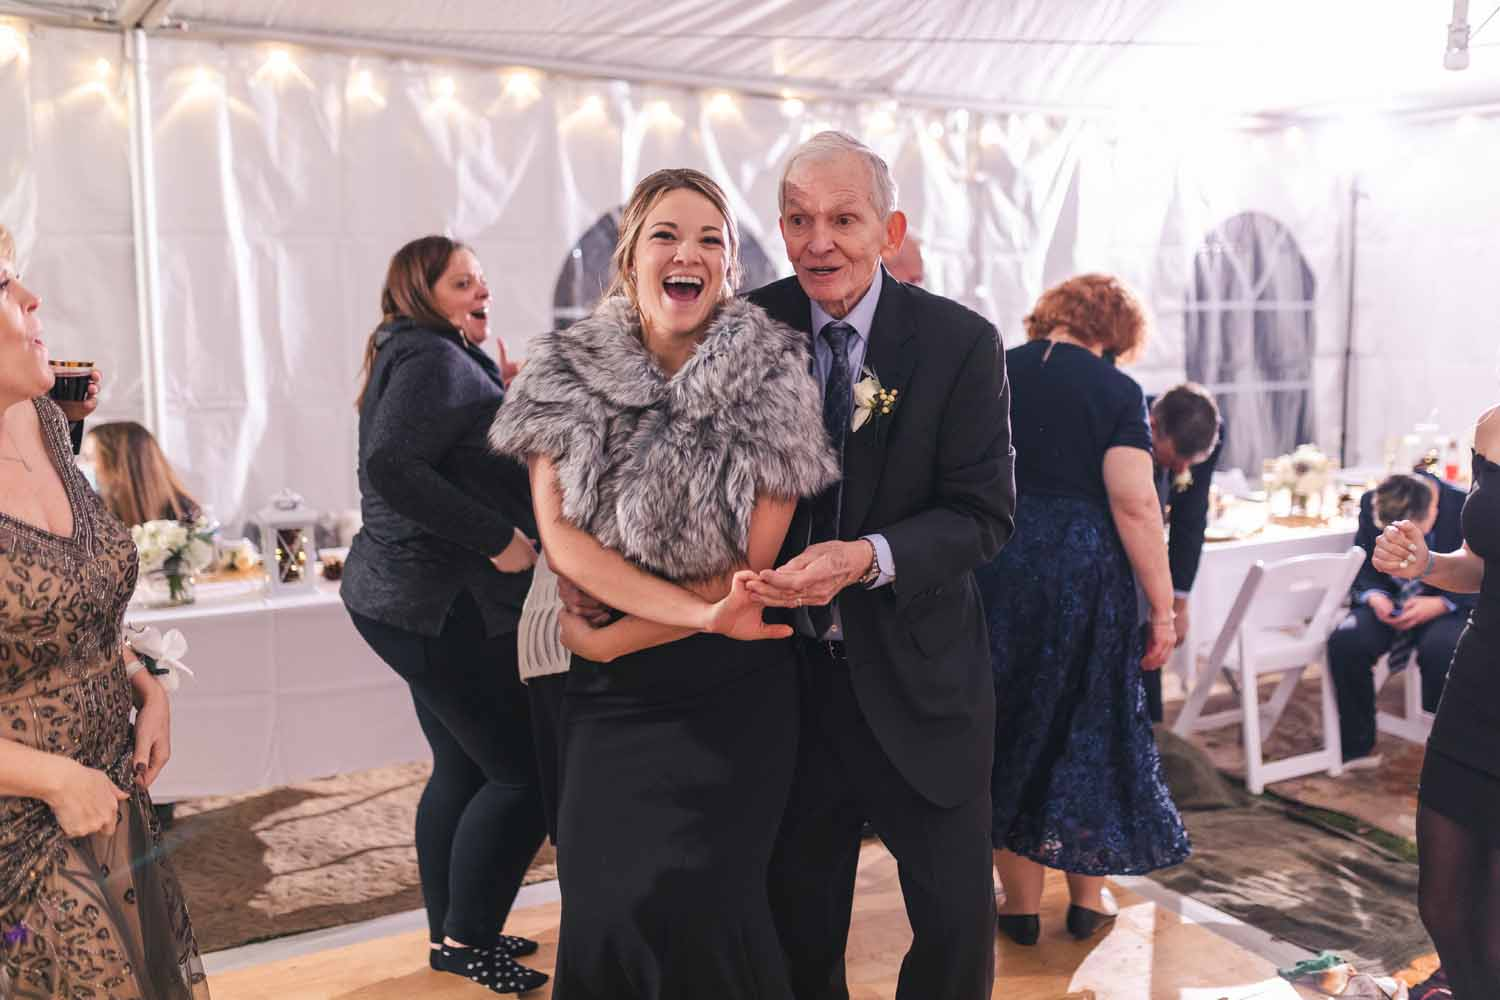 Grandfather dancing with granddaughter at wedding reception